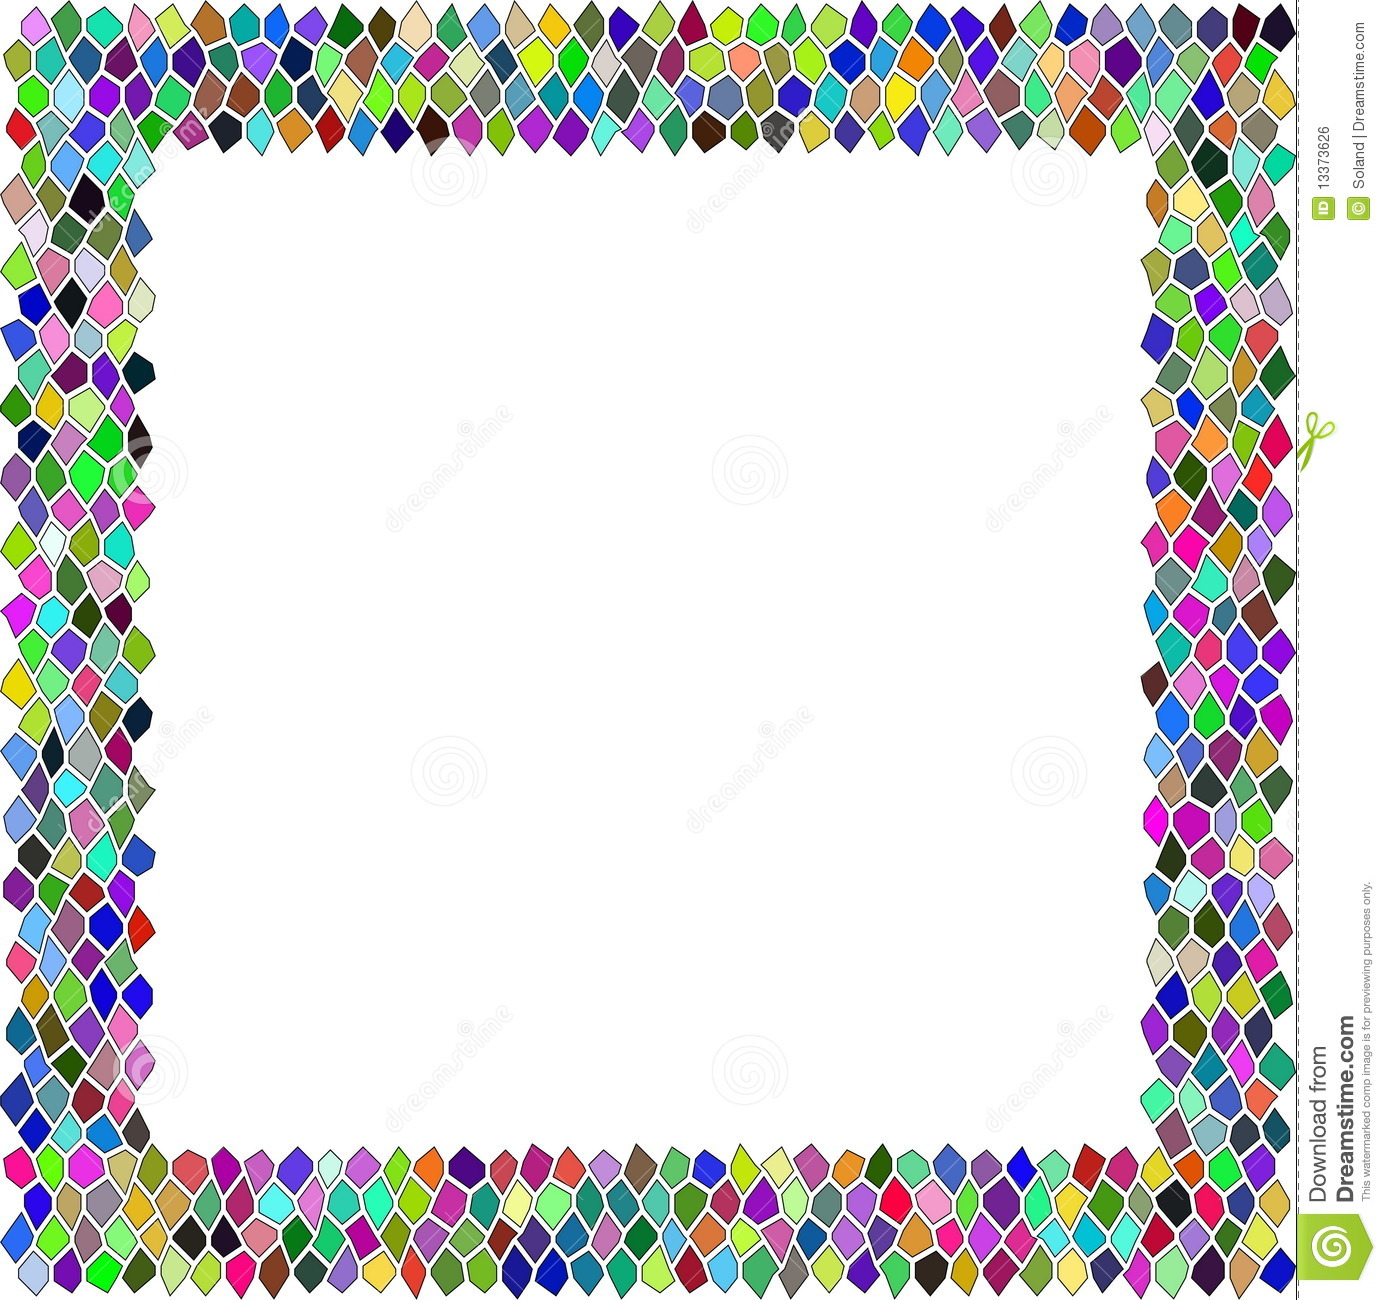 Borders . Boarder clipart mosaic